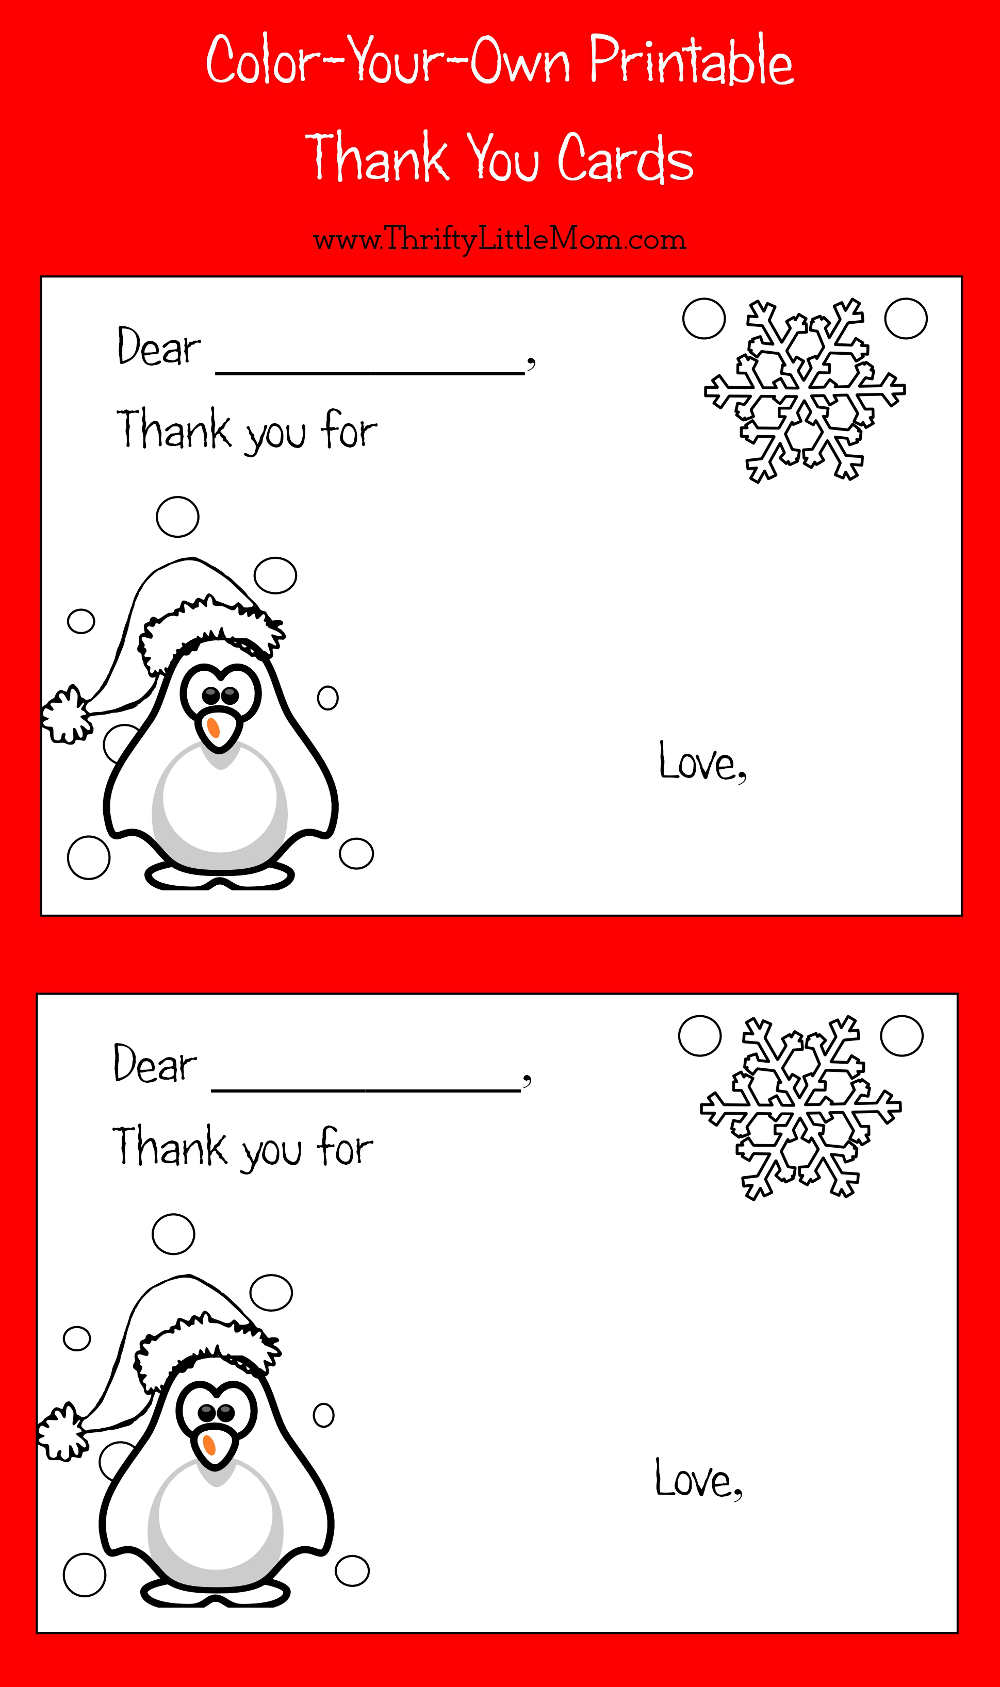 color your own printable thank you cards for kids thrifty little mom